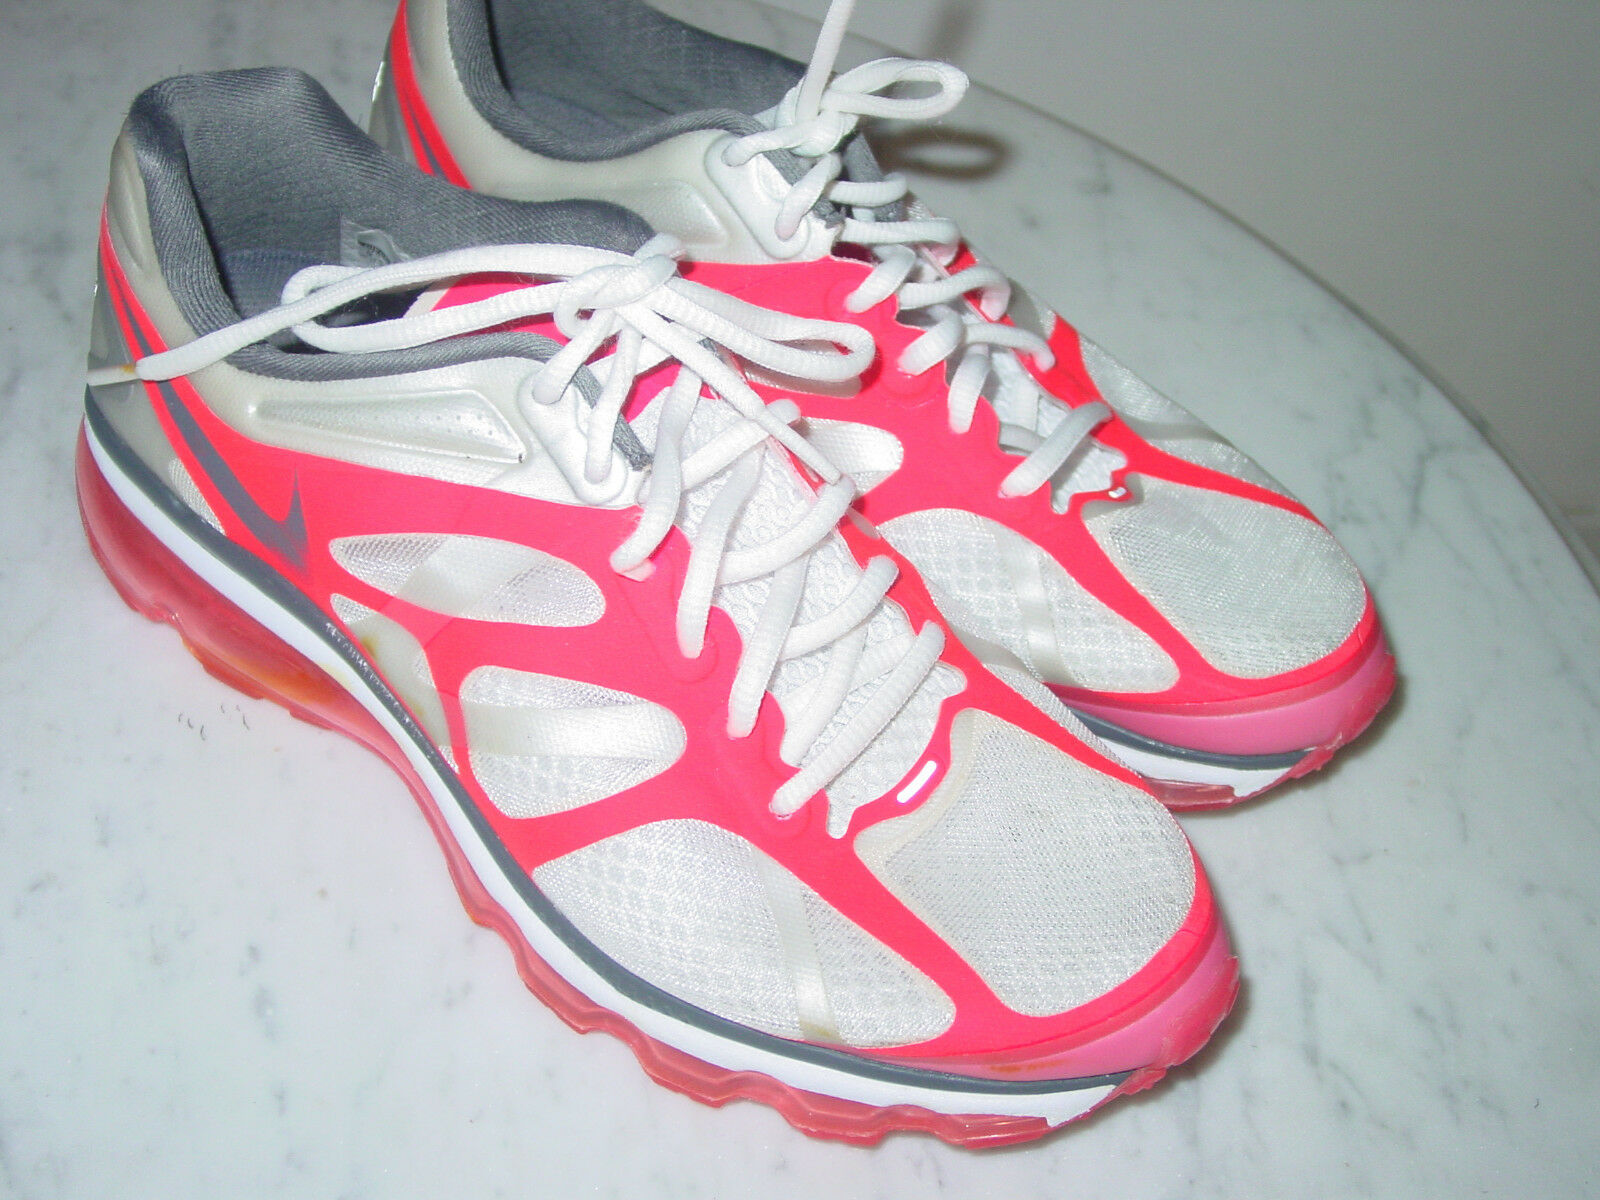 2011 Nike Air Max+ 2012 White/Dark Grey/Pink Running Shoes! Comfortable Seasonal price cuts, discount benefits